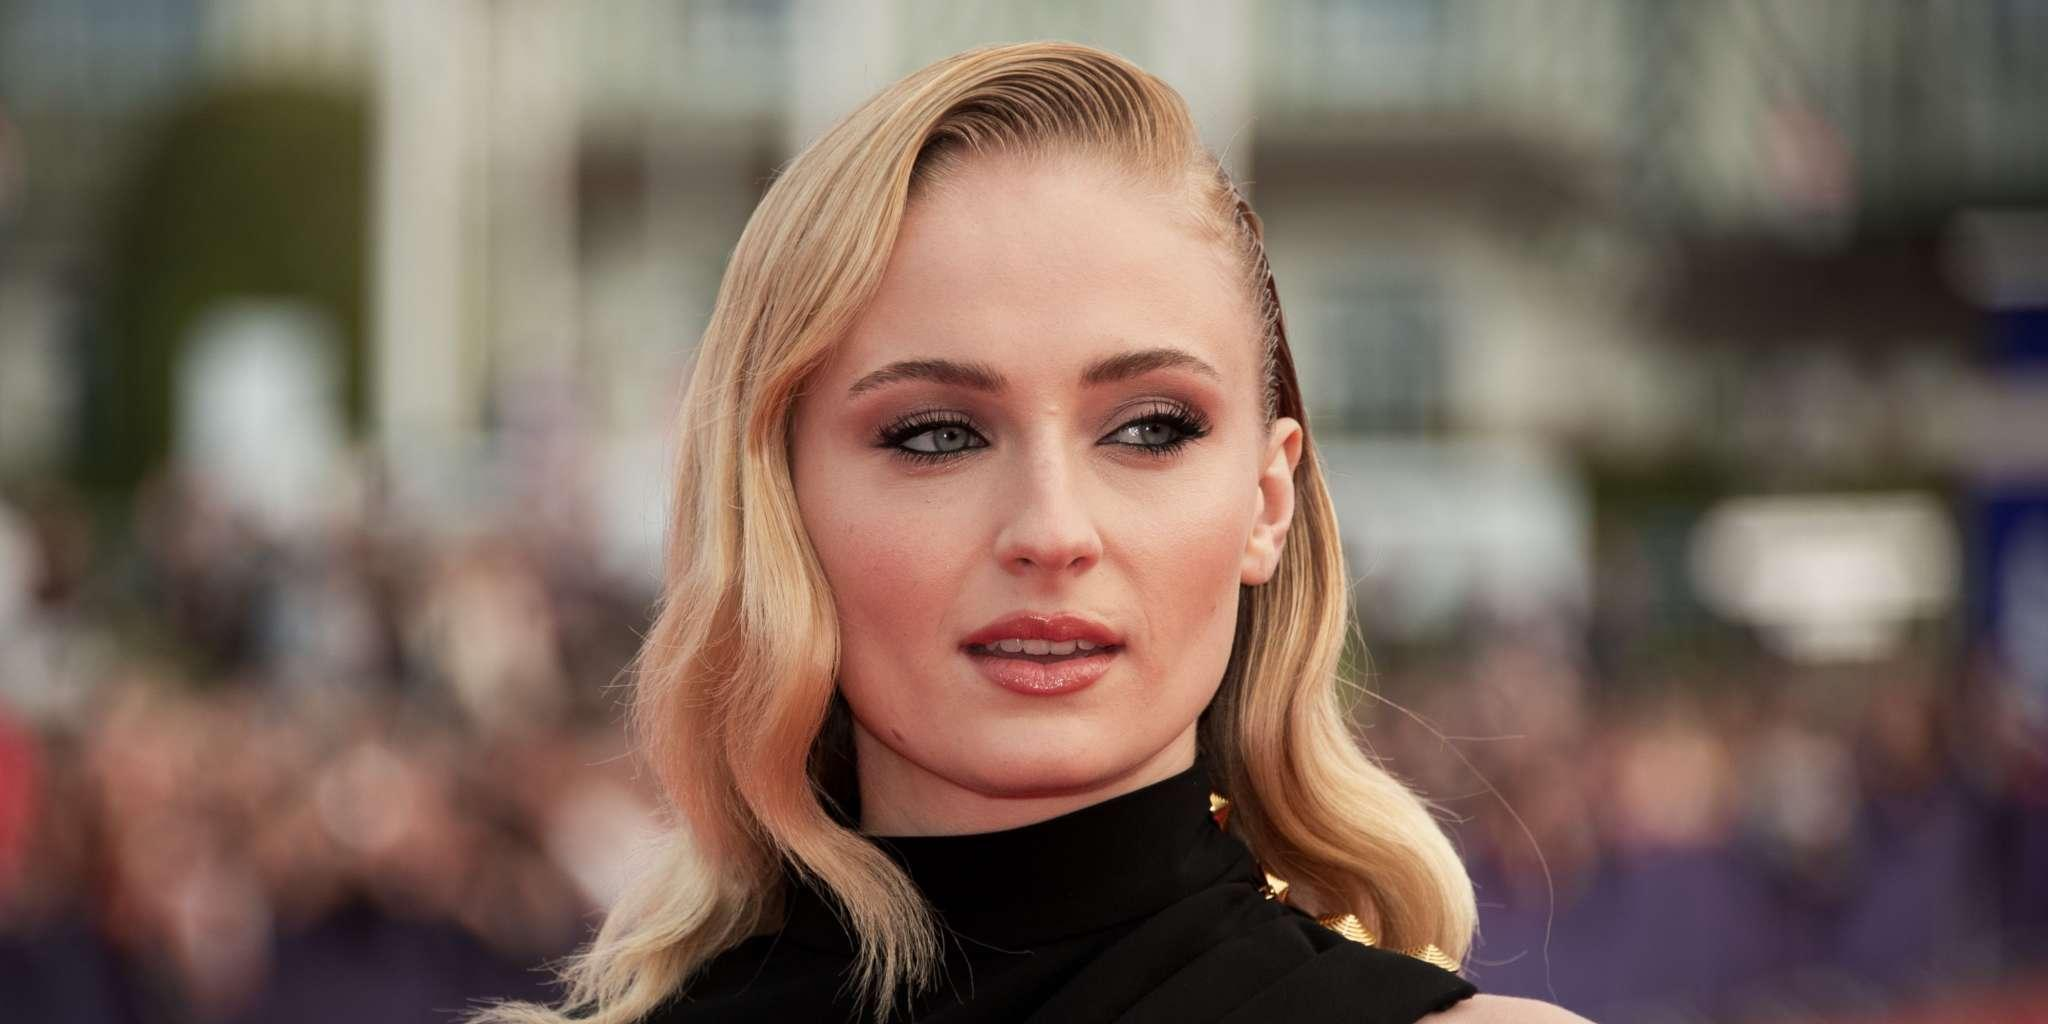 Sophie Turner Pays Tribute To Daughter Willa And Husband Joe Jonas By Getting 'W' And 'J' Tattoos